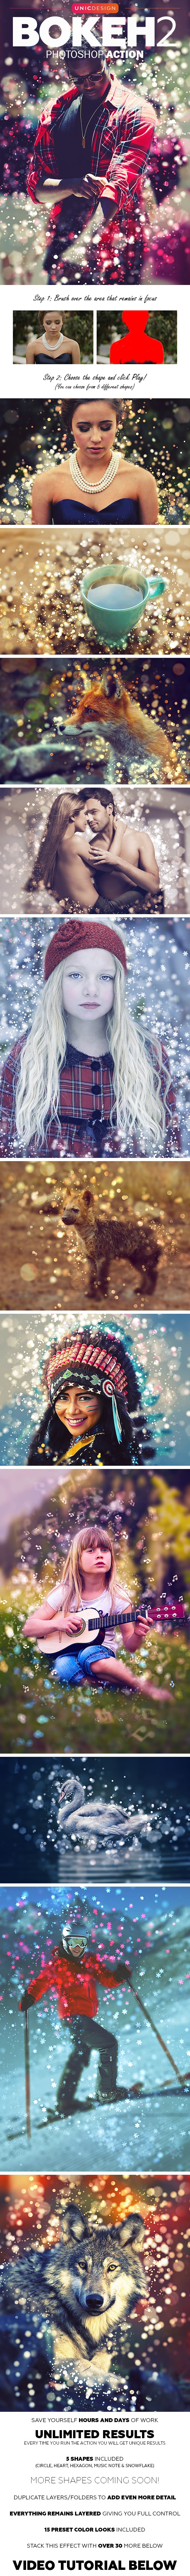 Bokeh 2 Photoshop Action - Photo Effects Actions